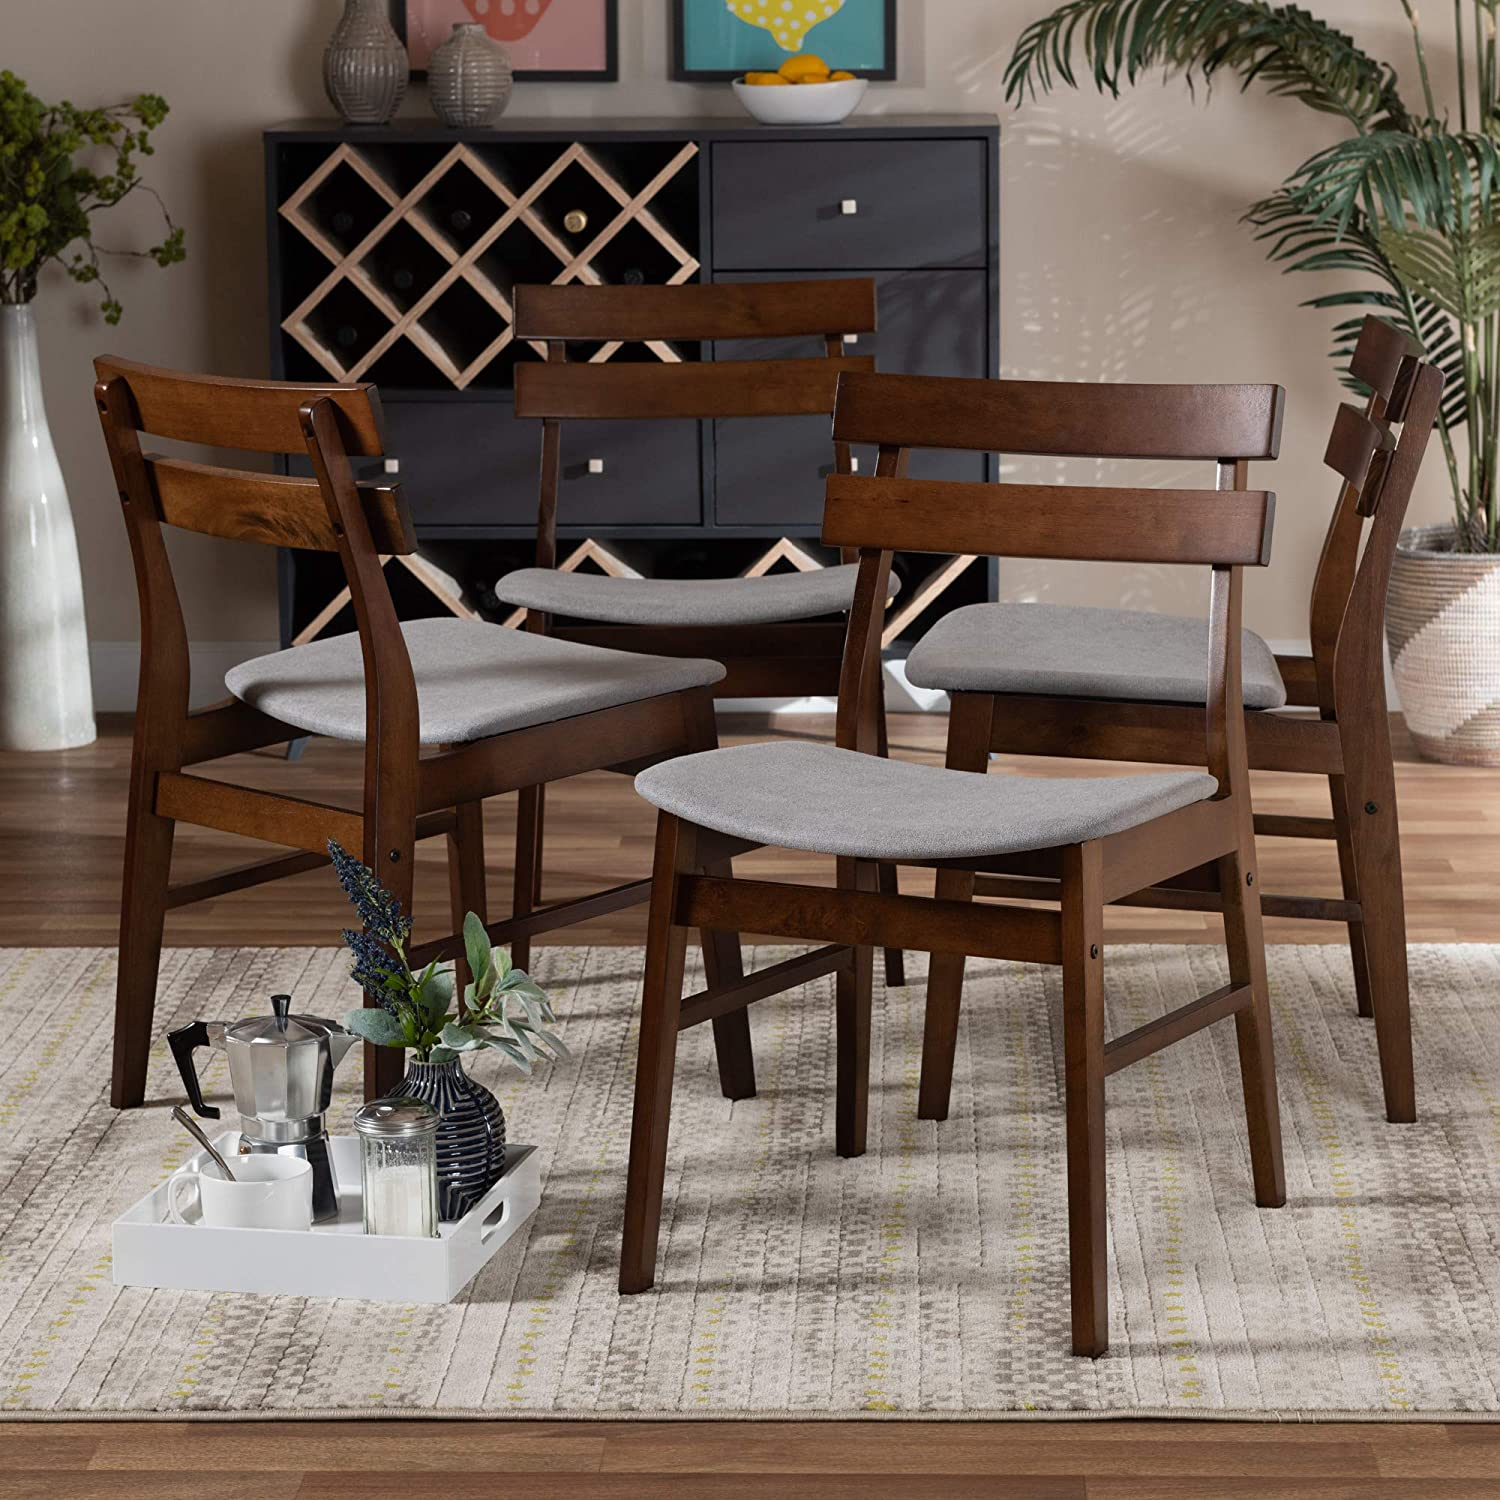 Baxton Studio Devlin Mid-Century Modern Transitional Light Grey Fabric Upholstered and Walnut Brown Finished Wood 4-Piece Dining Chair Set